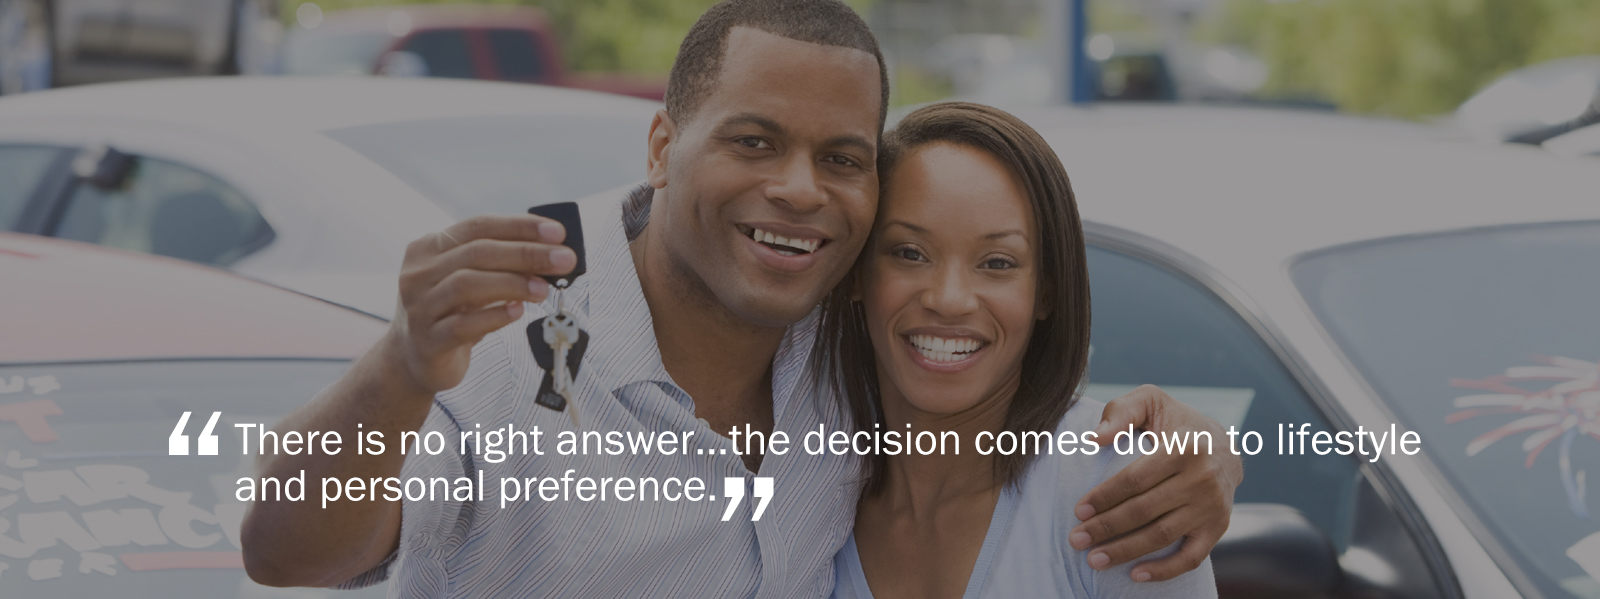 There is no right answer...the decision comes down to lifestyle and personal perference.